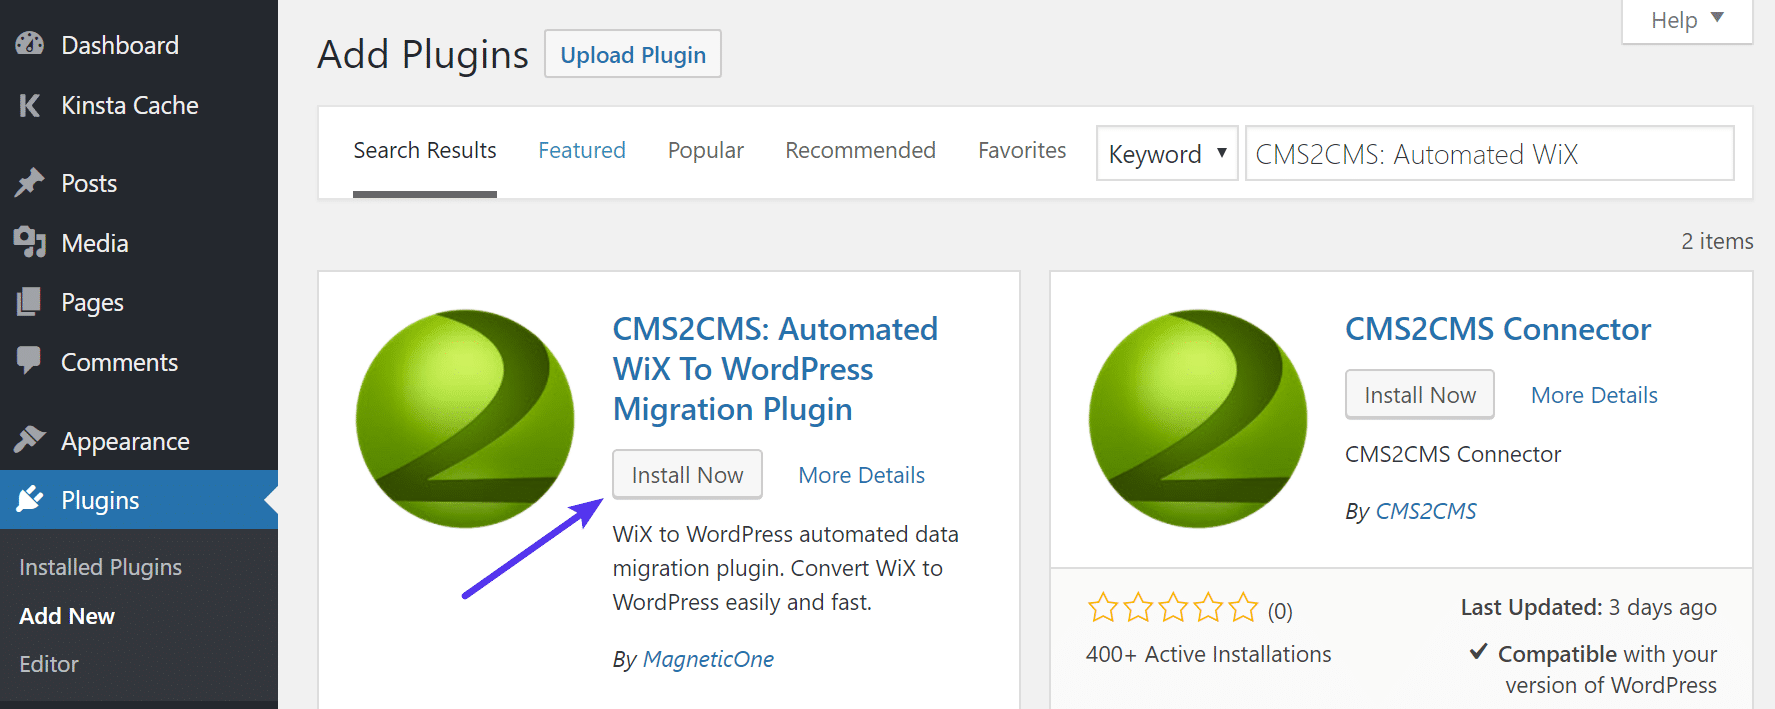 Installer CMS2CMS Automated Wix to WordPress